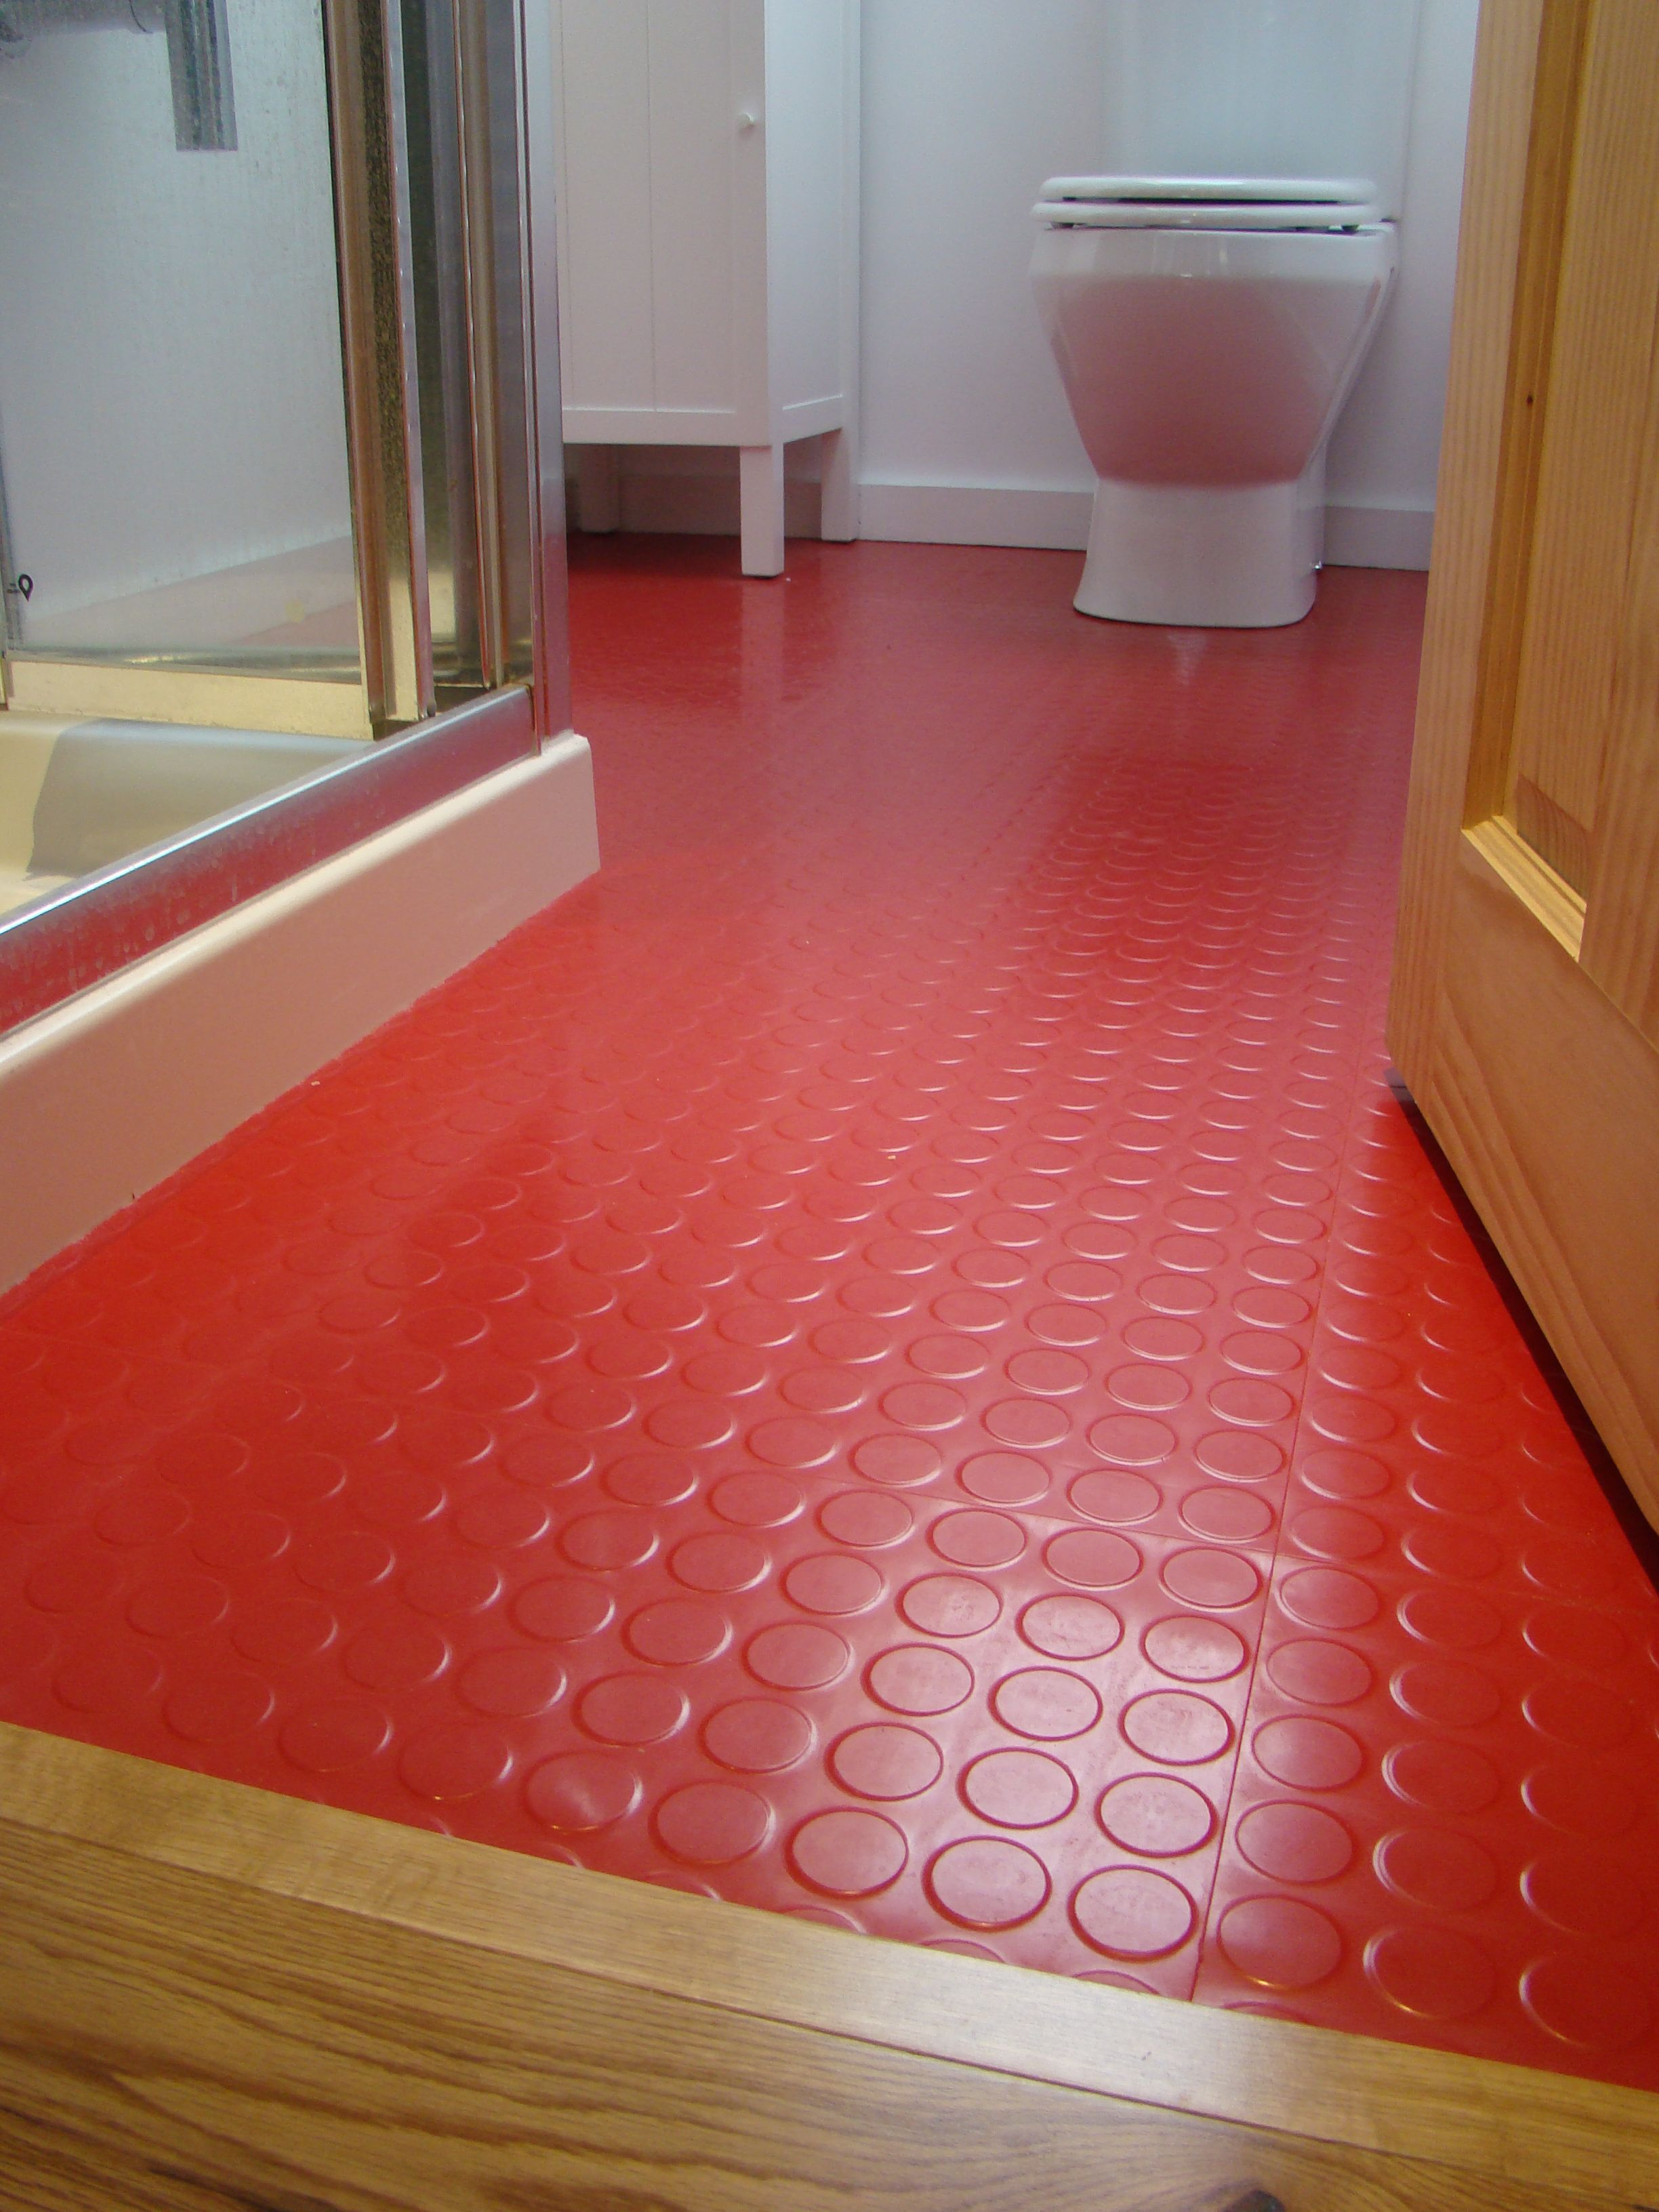 Red Rubber Flooring From Polyflor In Bathroom